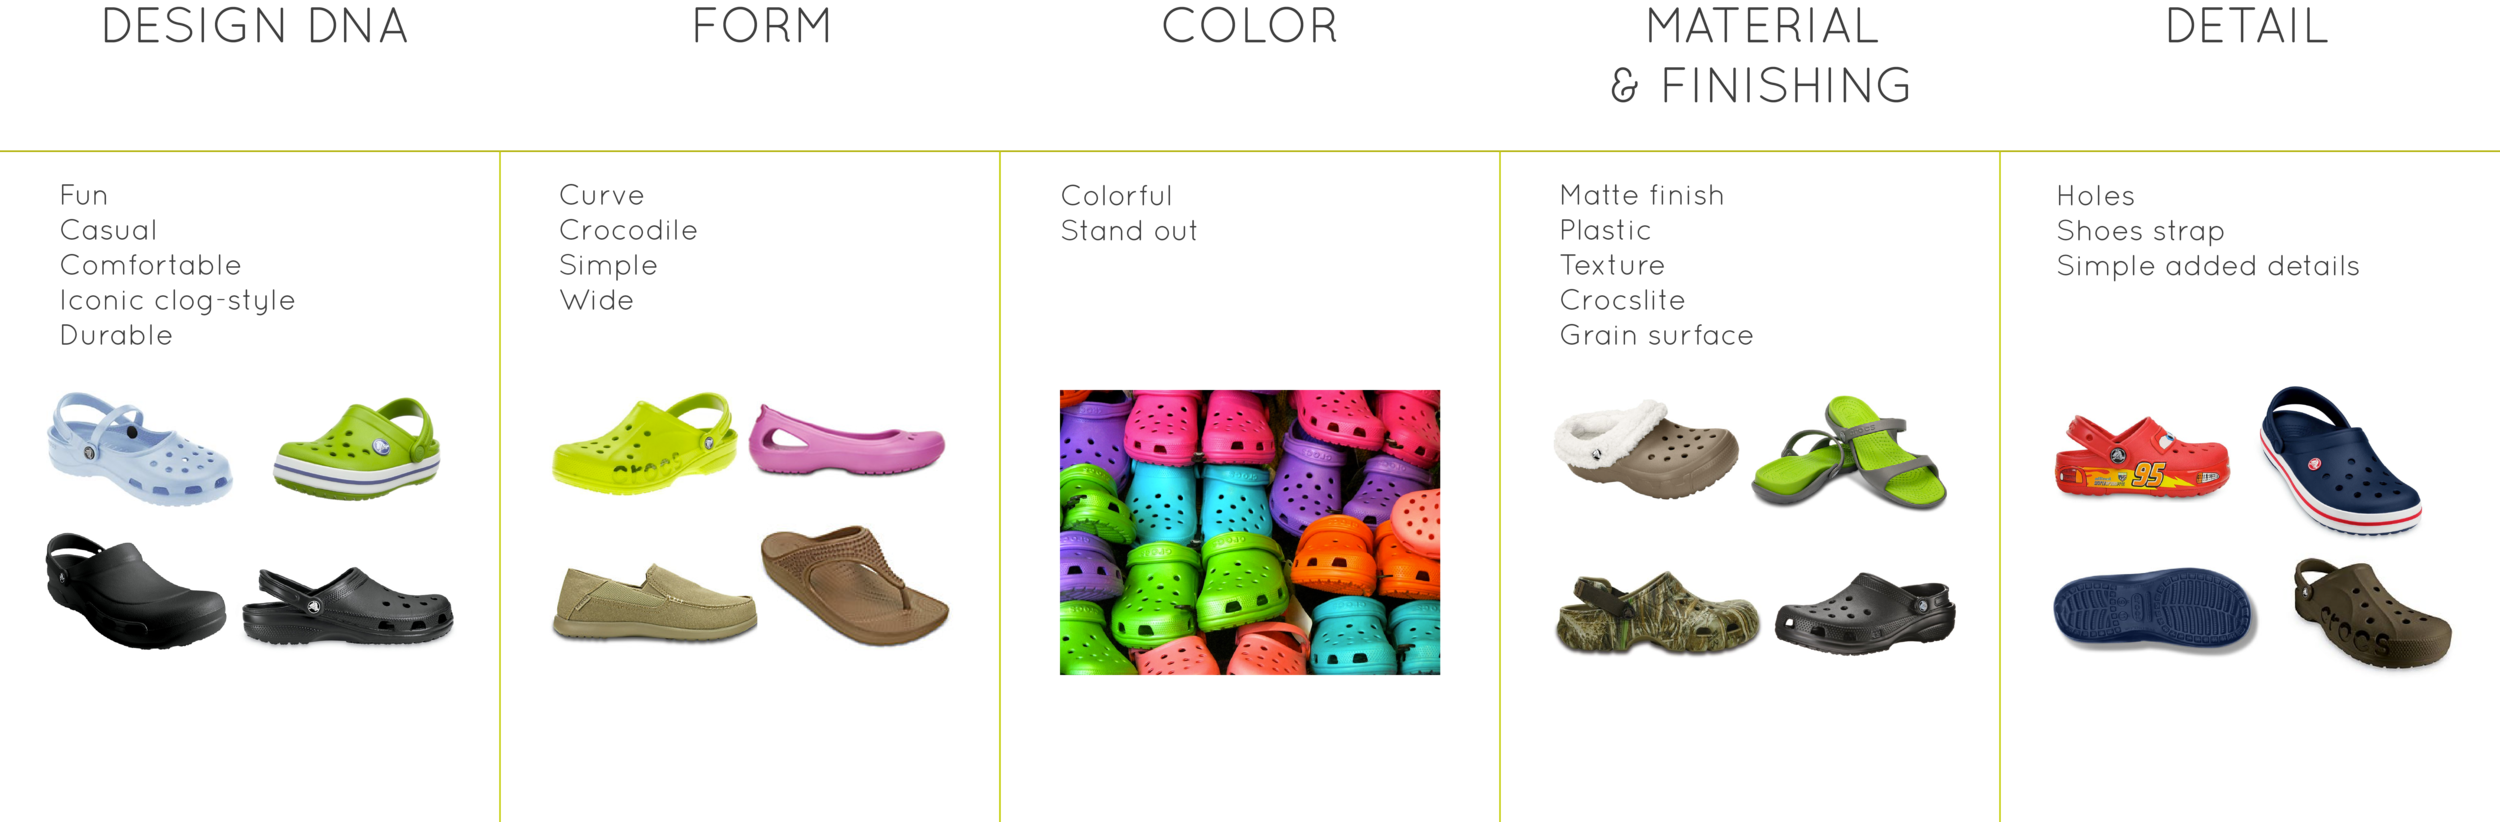 Crocs-Design Language-01.png